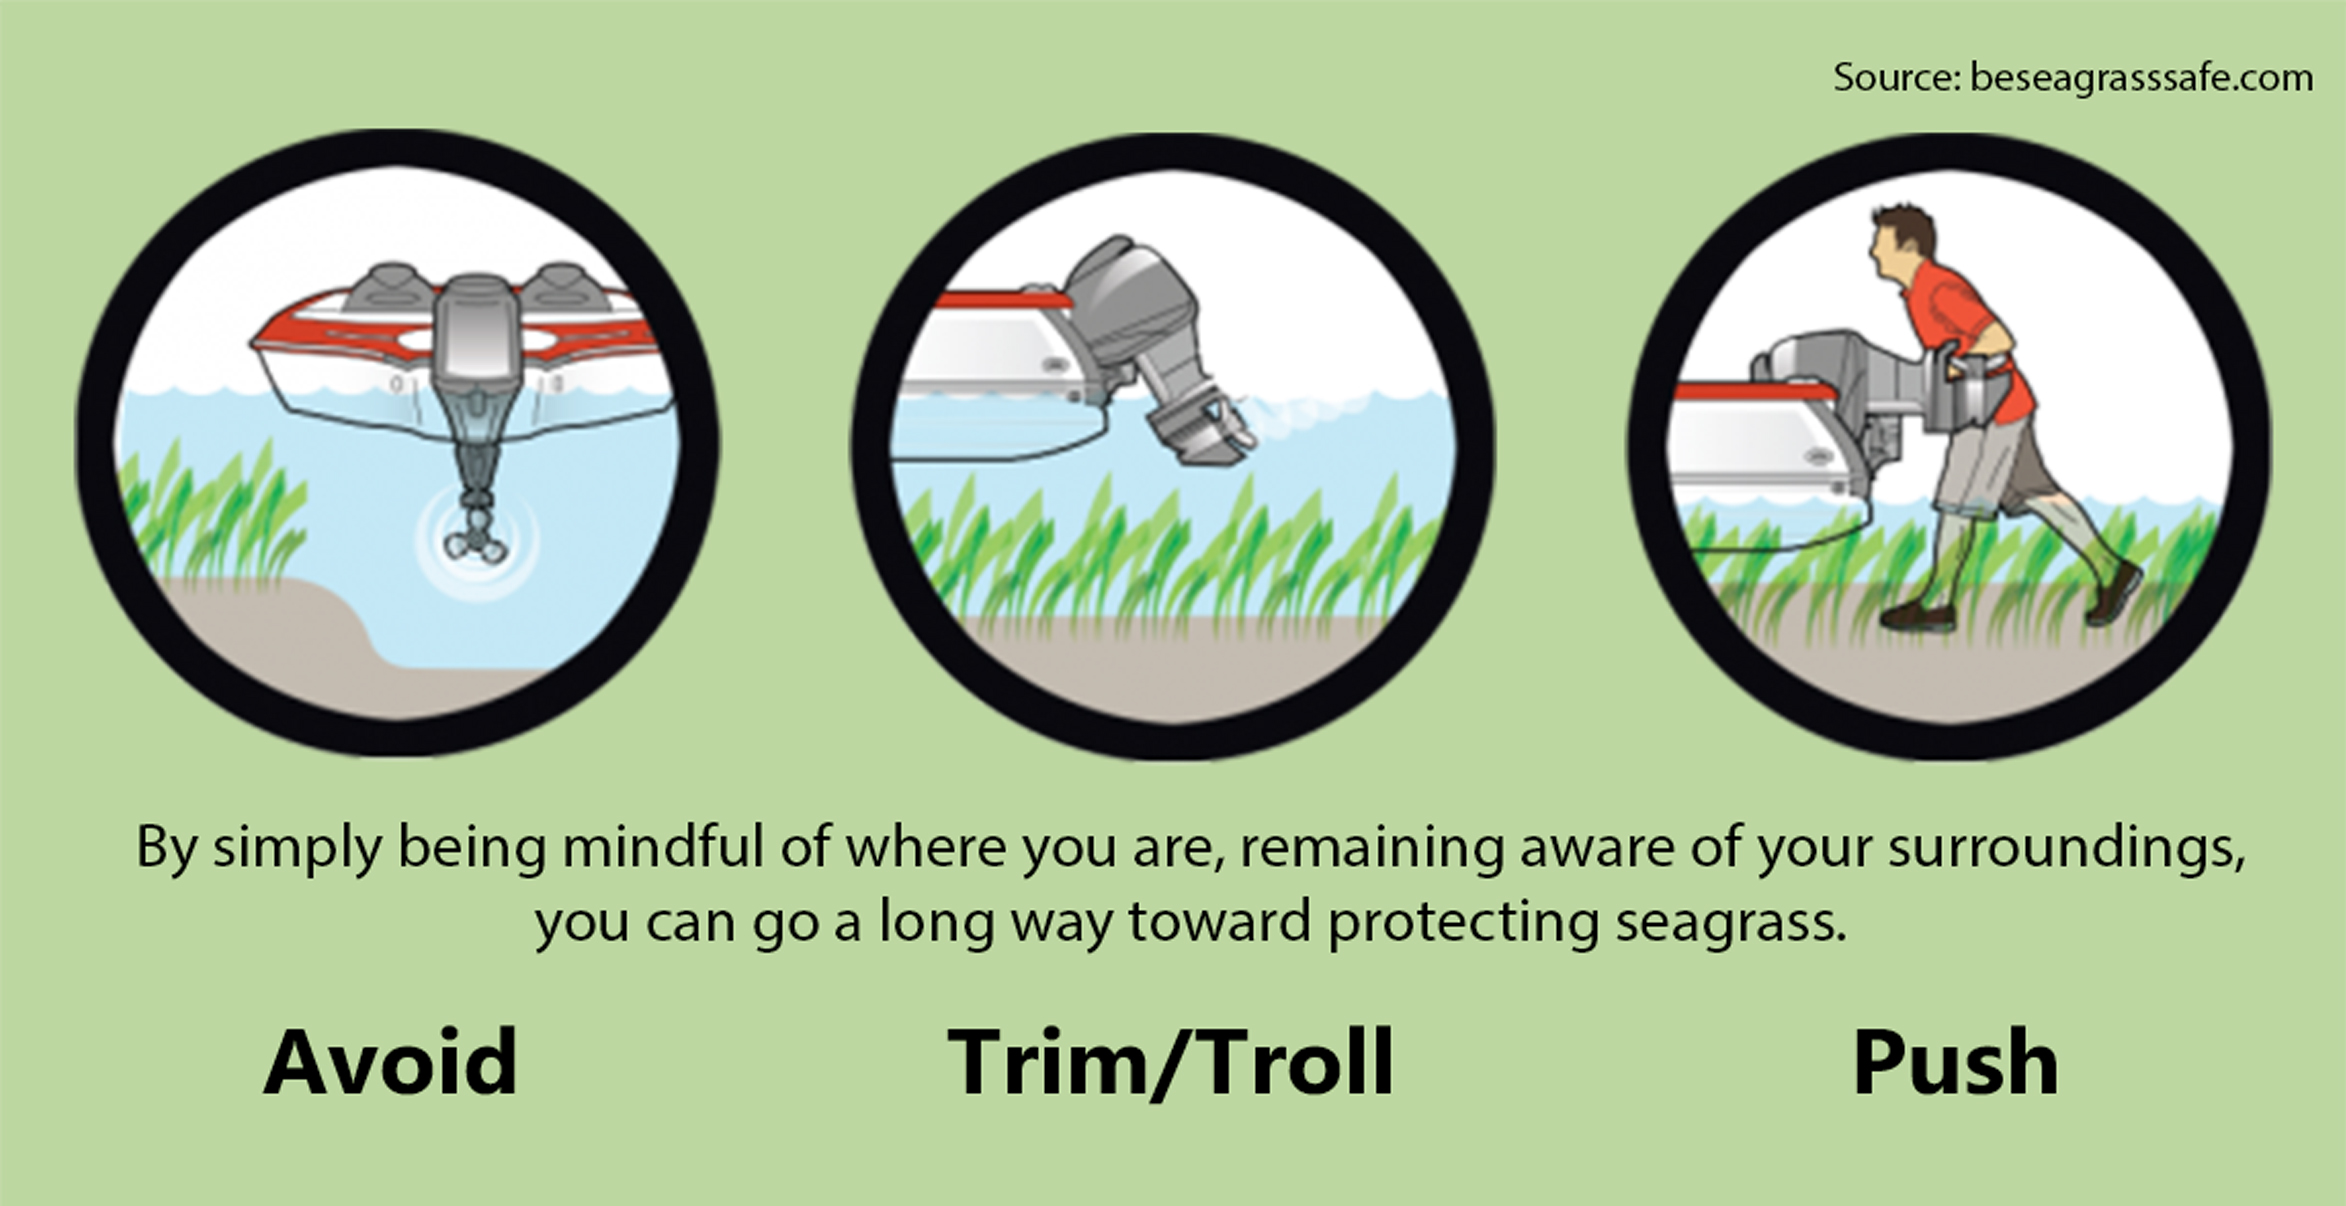 Be seagrass safe